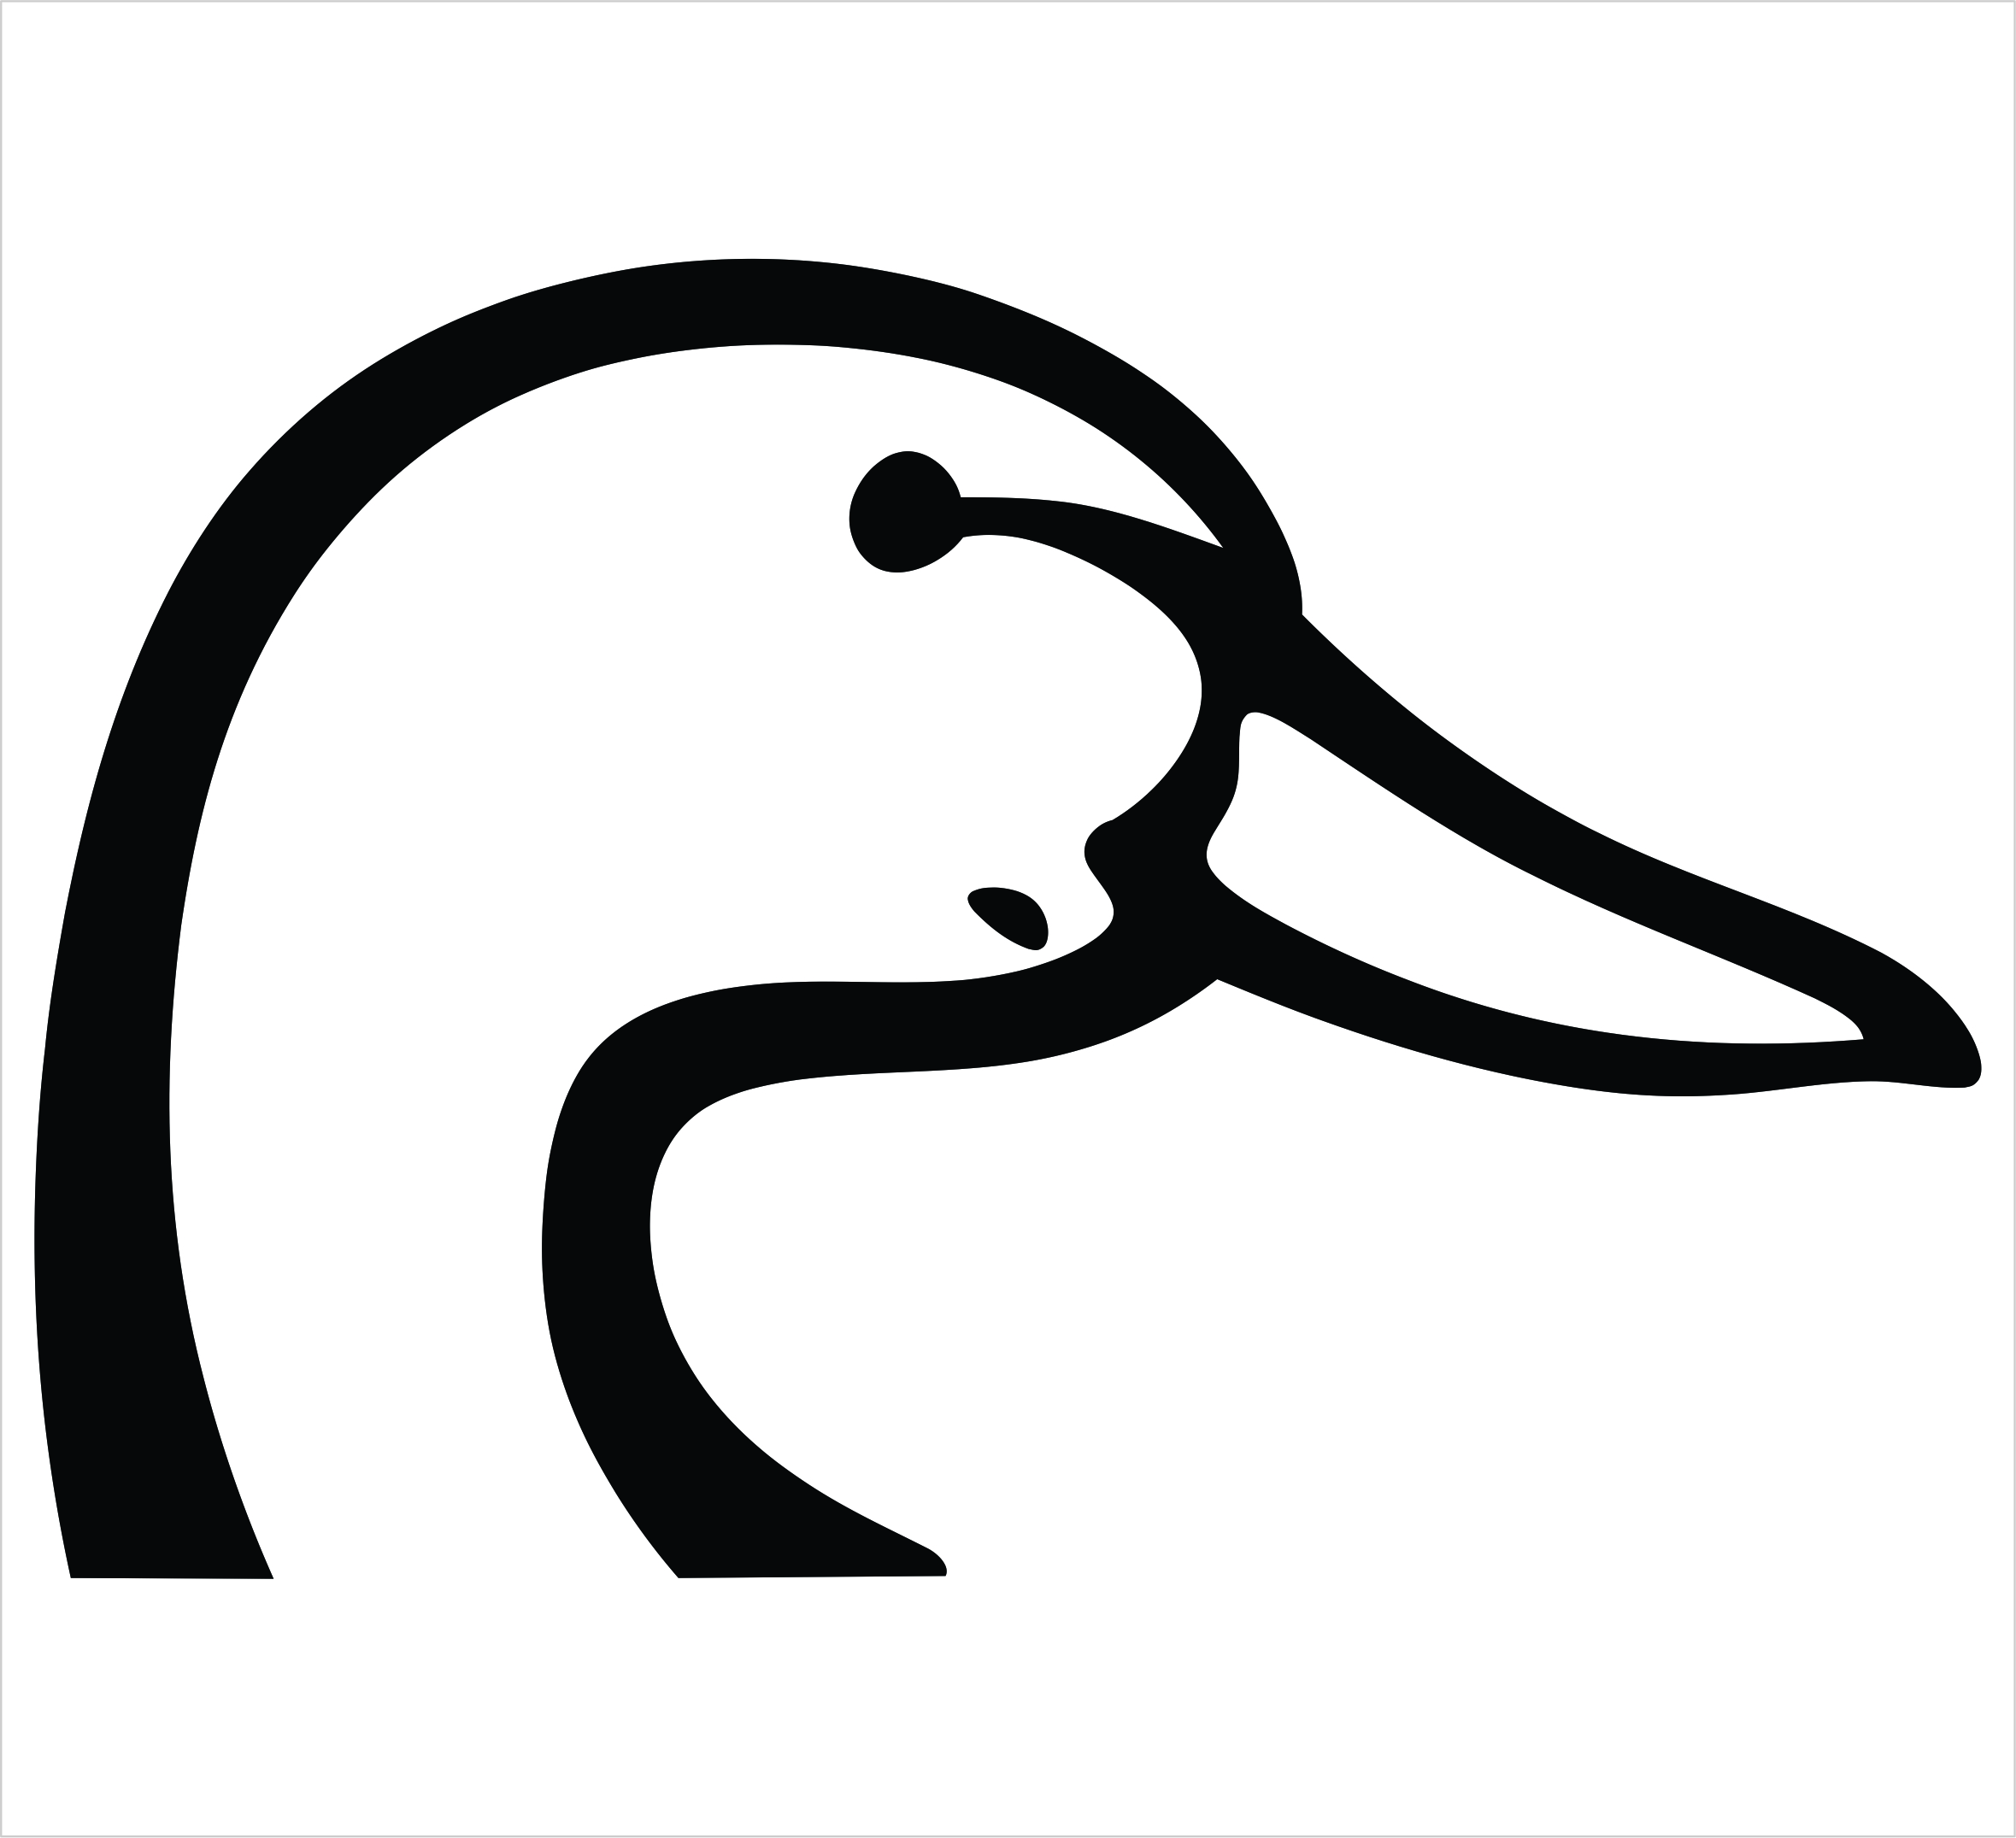 Ducks unlimited clipart.